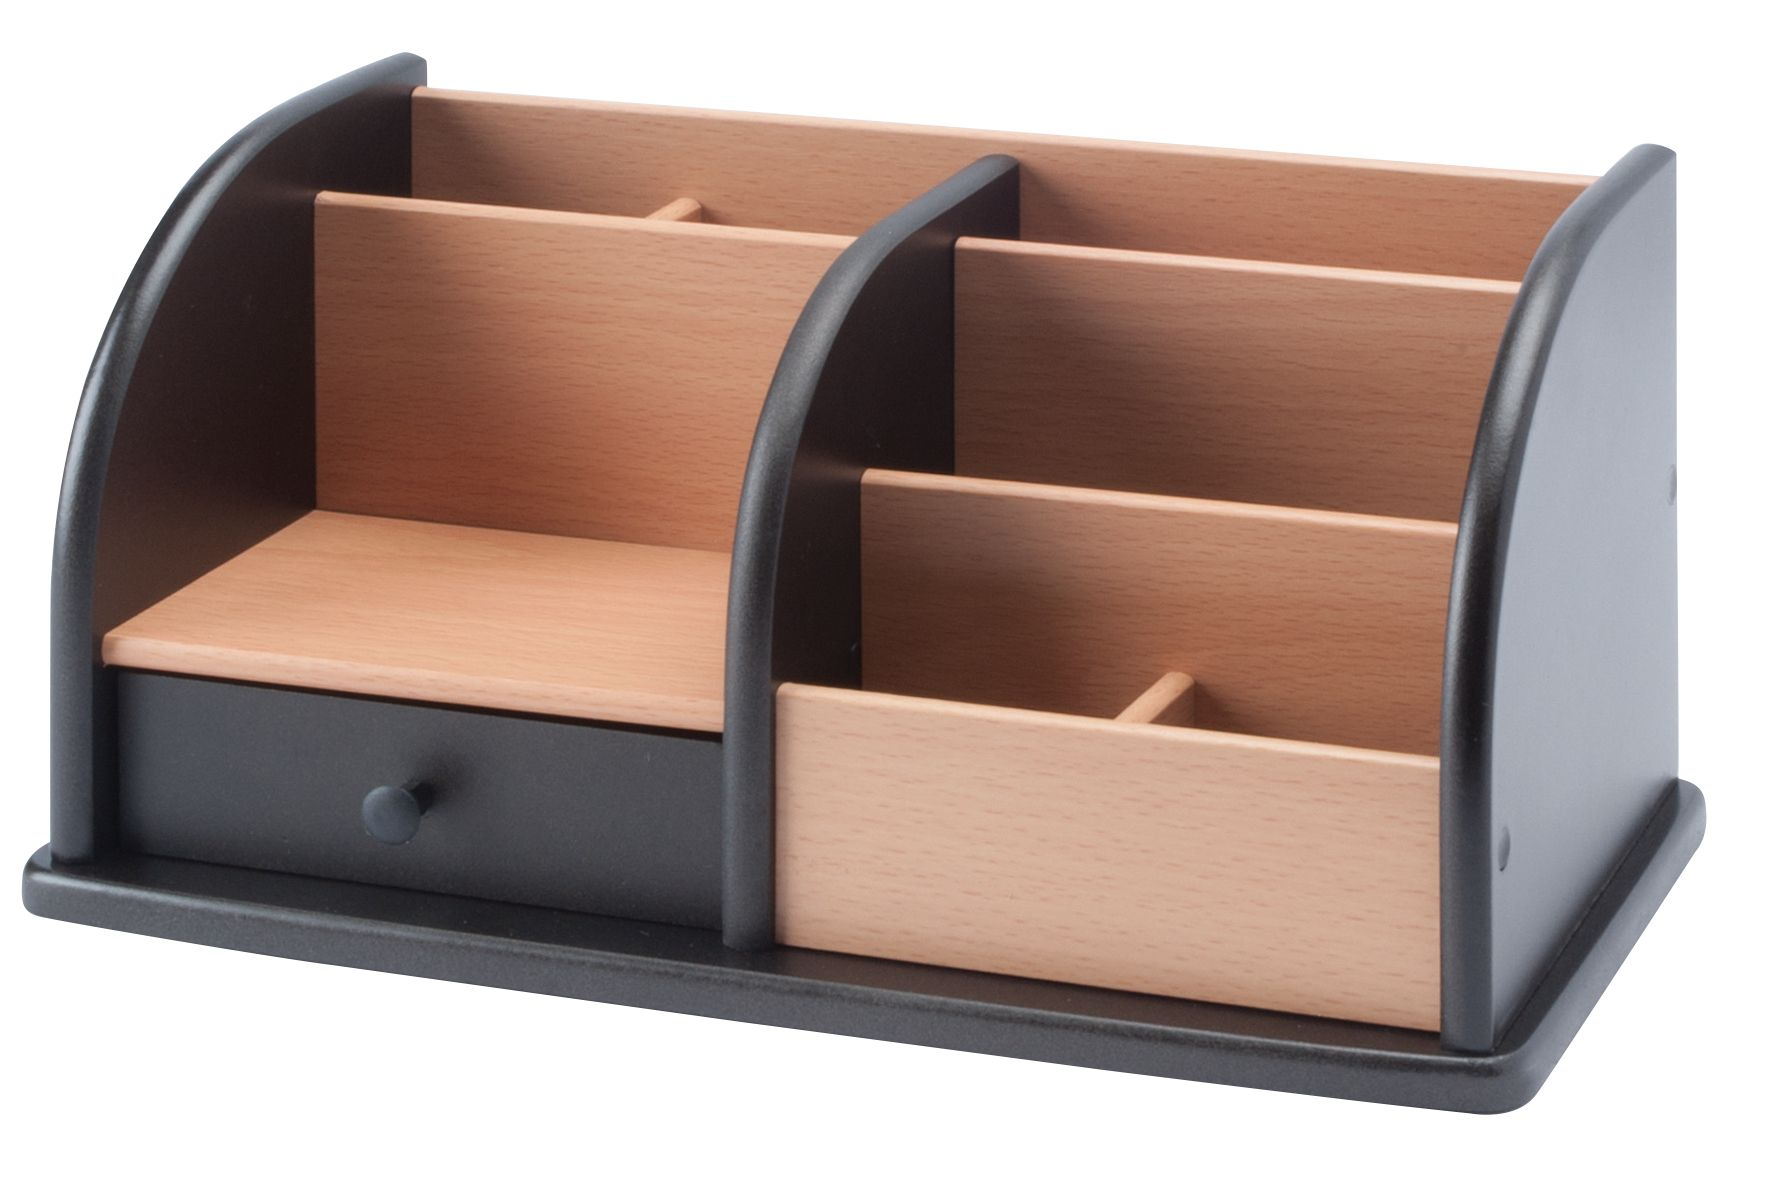 Ikea Desk Drawer Organizer Ikea Desk Organizer | Homesfeed